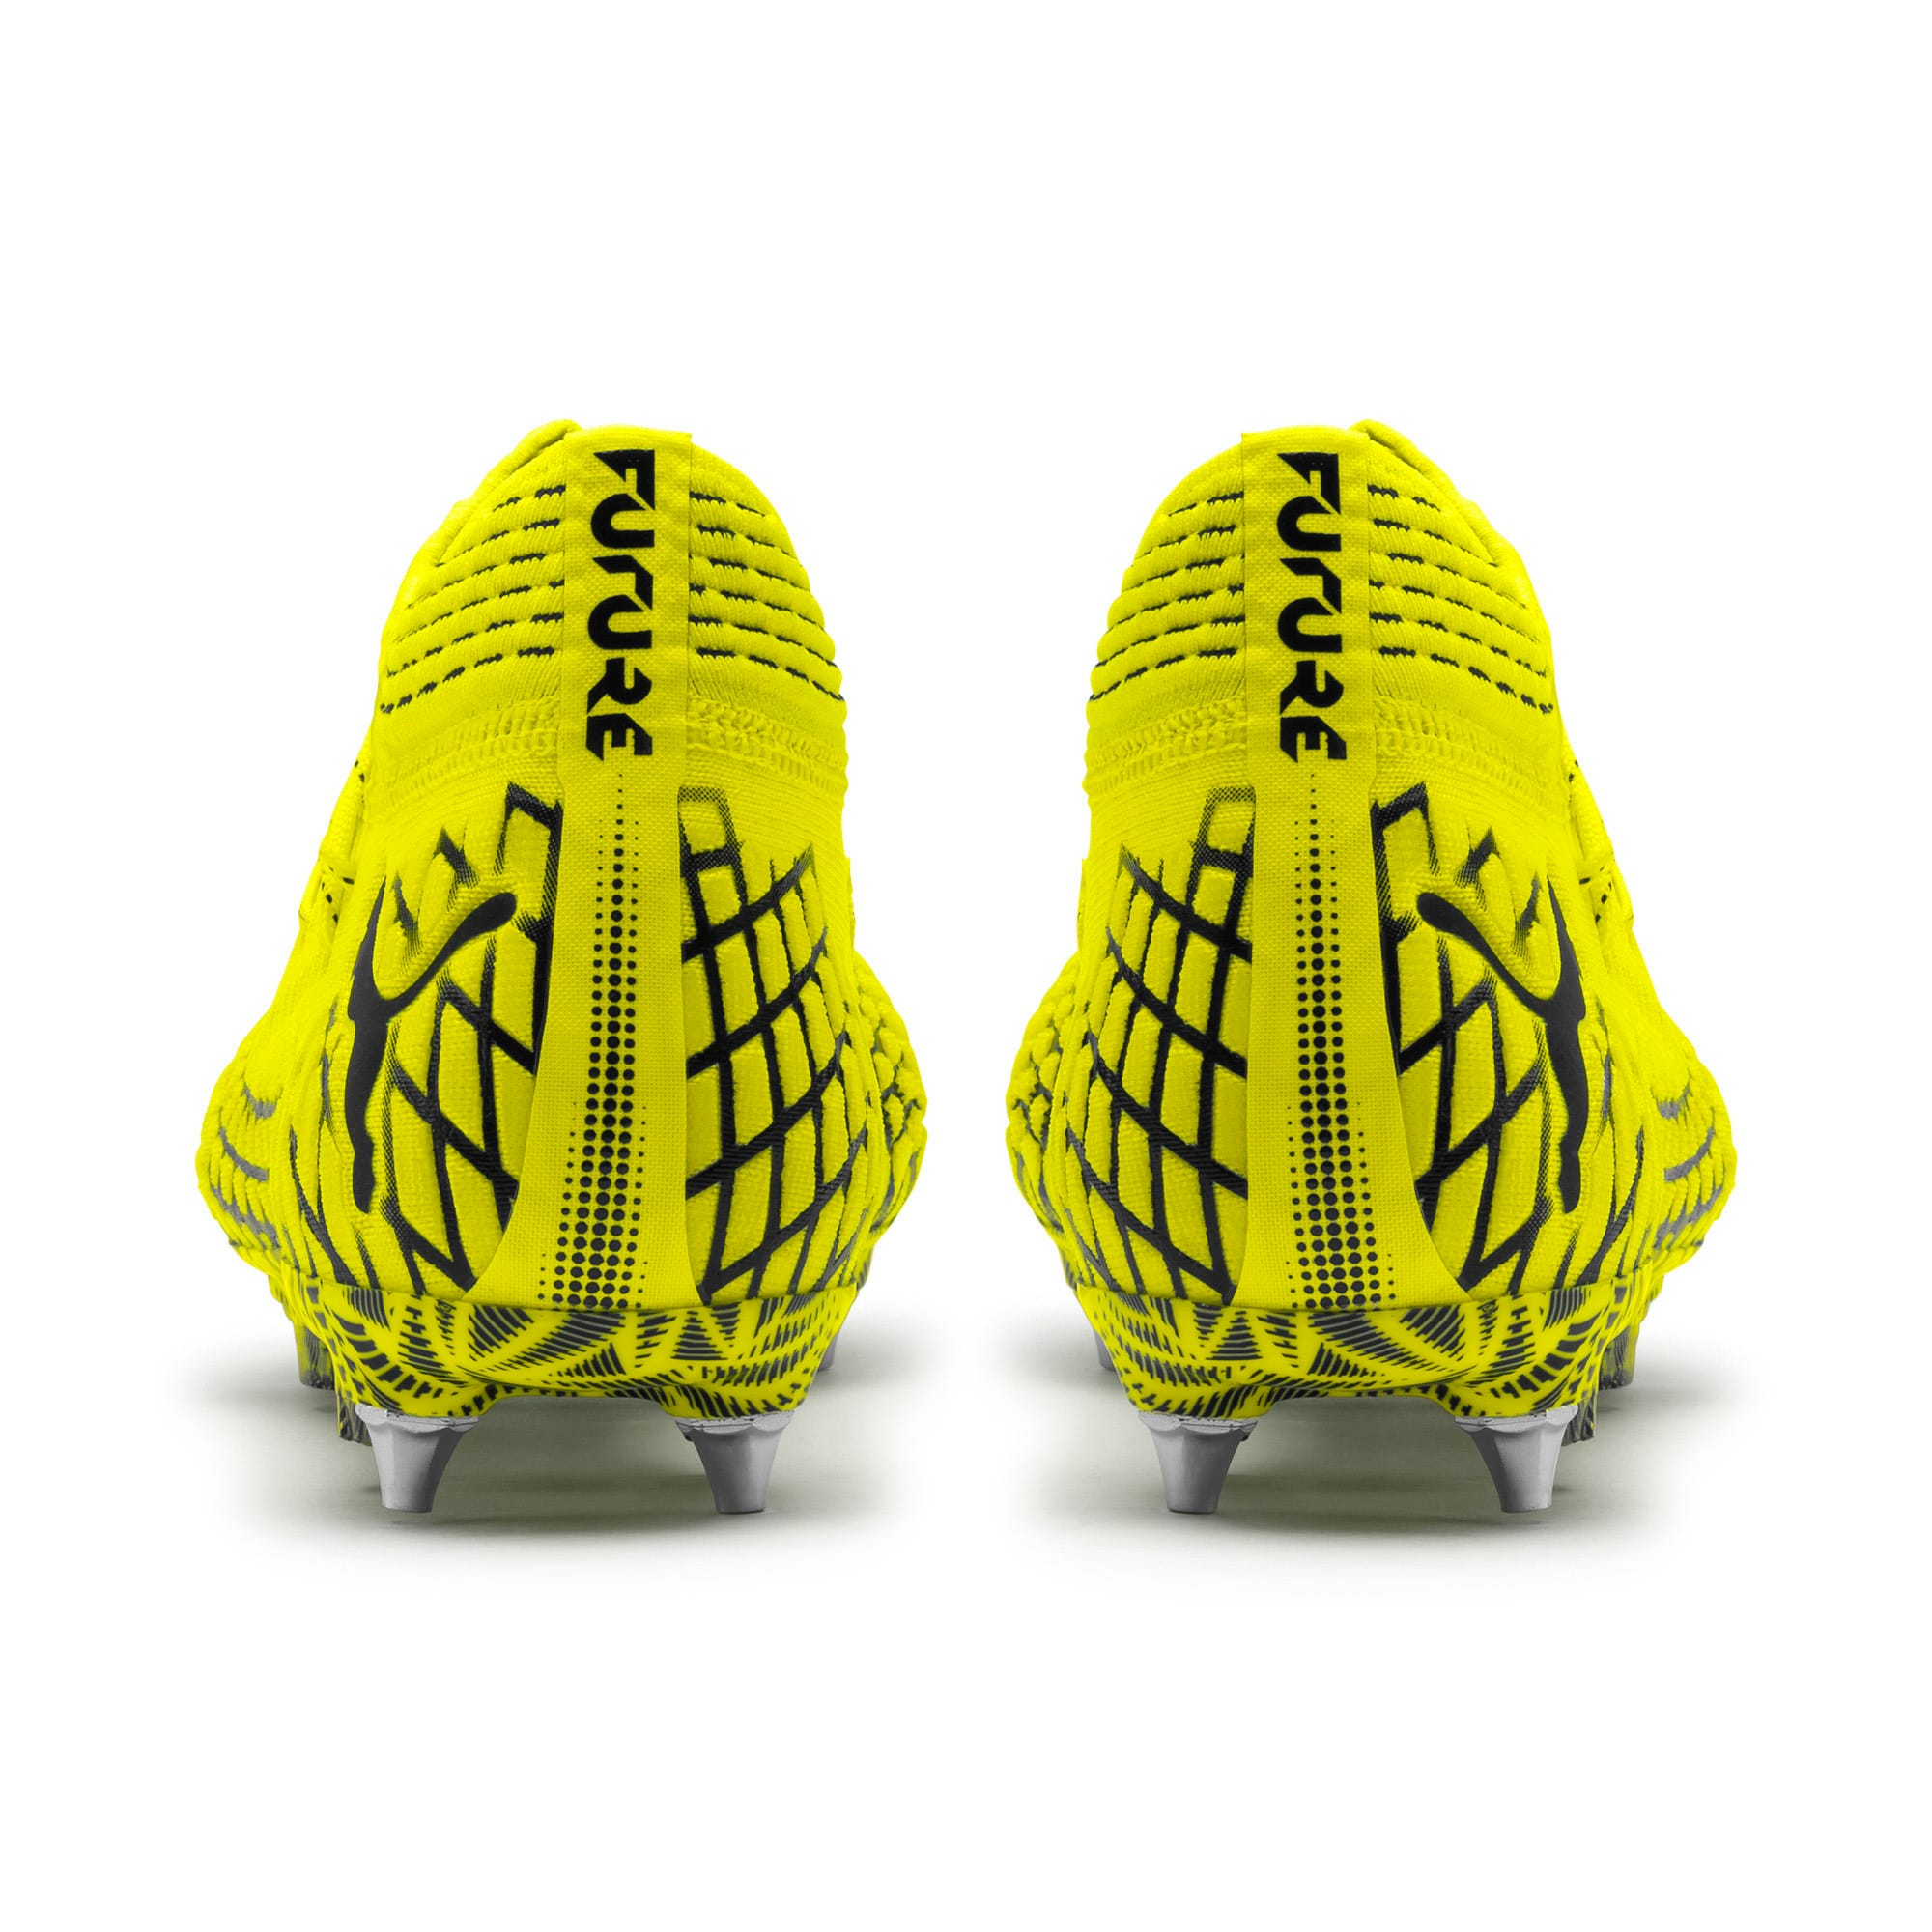 Thumbnail 3 of FUTURE 4.1 NETFIT MxSG Football Boots, Yellow Alert-Puma Black, medium